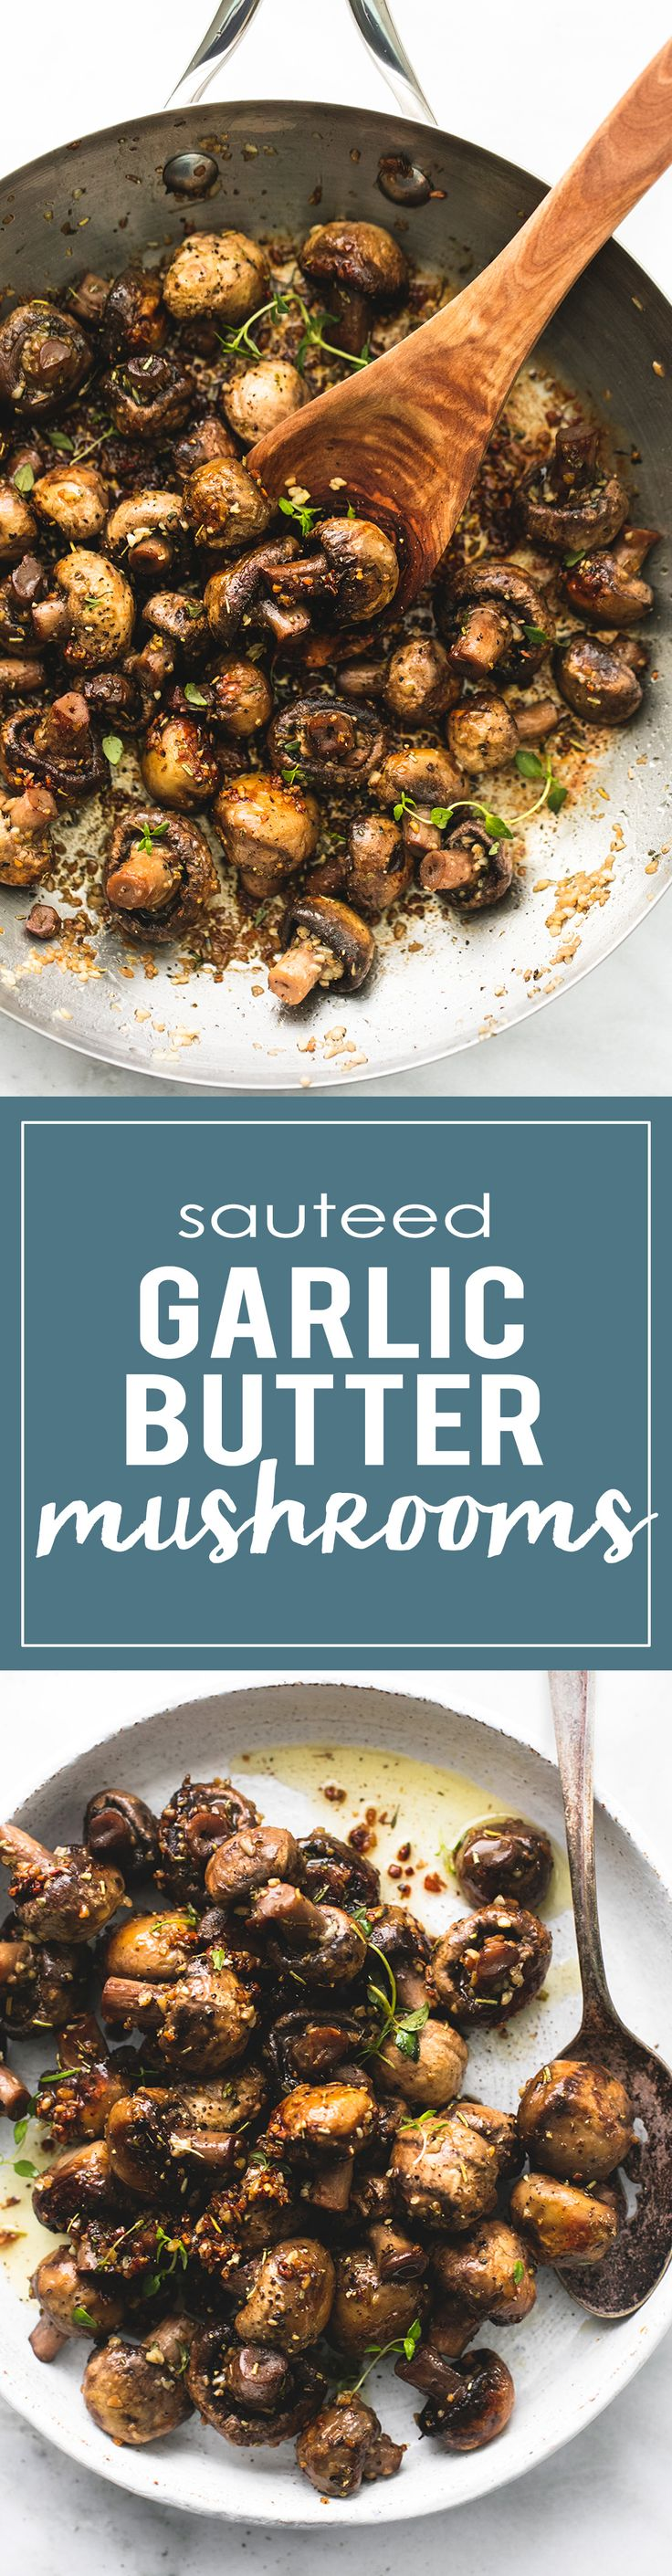 Sauteed Garlic Butter Mushrooms - Quick and easy 15-minute sautéed garlic butter mushrooms are bursting with flavor and make the perfect side dish or appetizer for any dinner recipe. | lecremedelacrumb.com